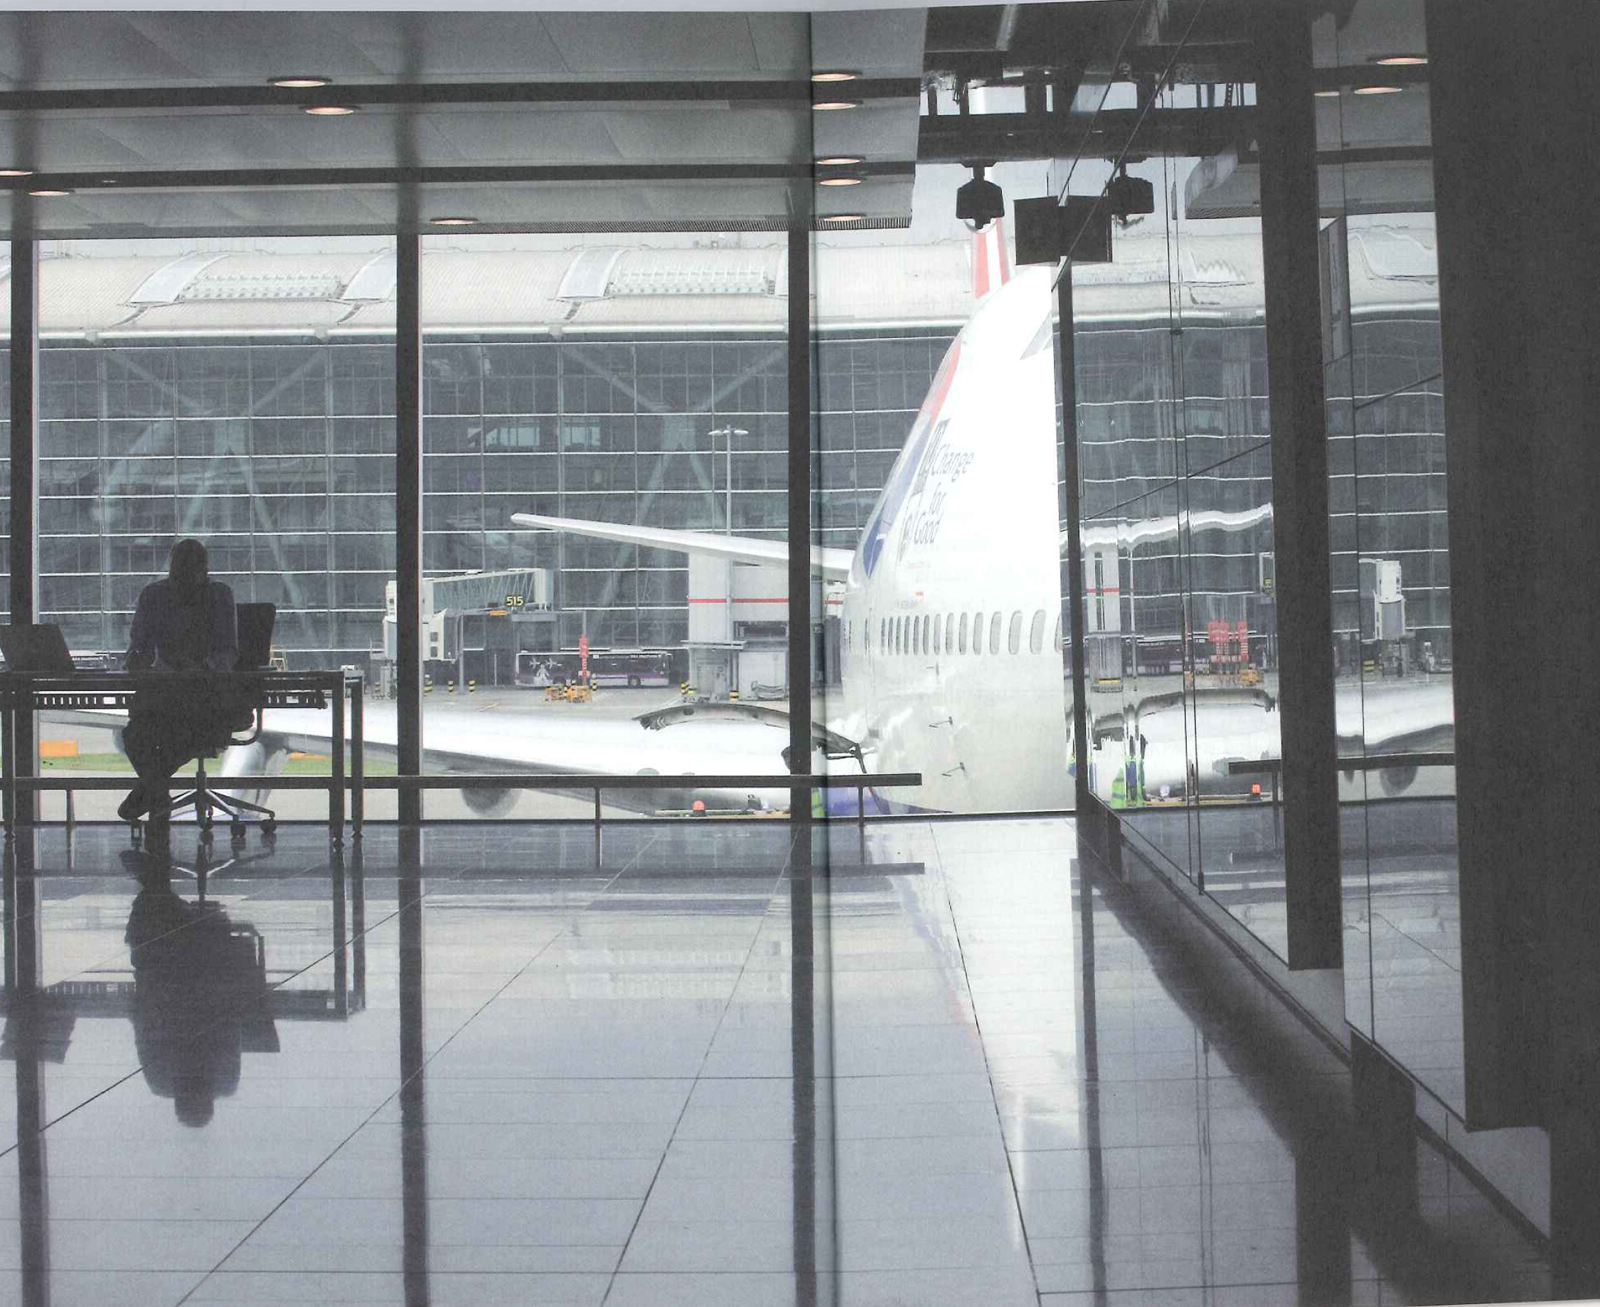 Here's a photo from Terminal 5 out toward one of the waiting jets. The photo is by Richard Baker, who took a number of seemingly pedestrian photos for the book that actually reveal much of the poetry of the terminal.